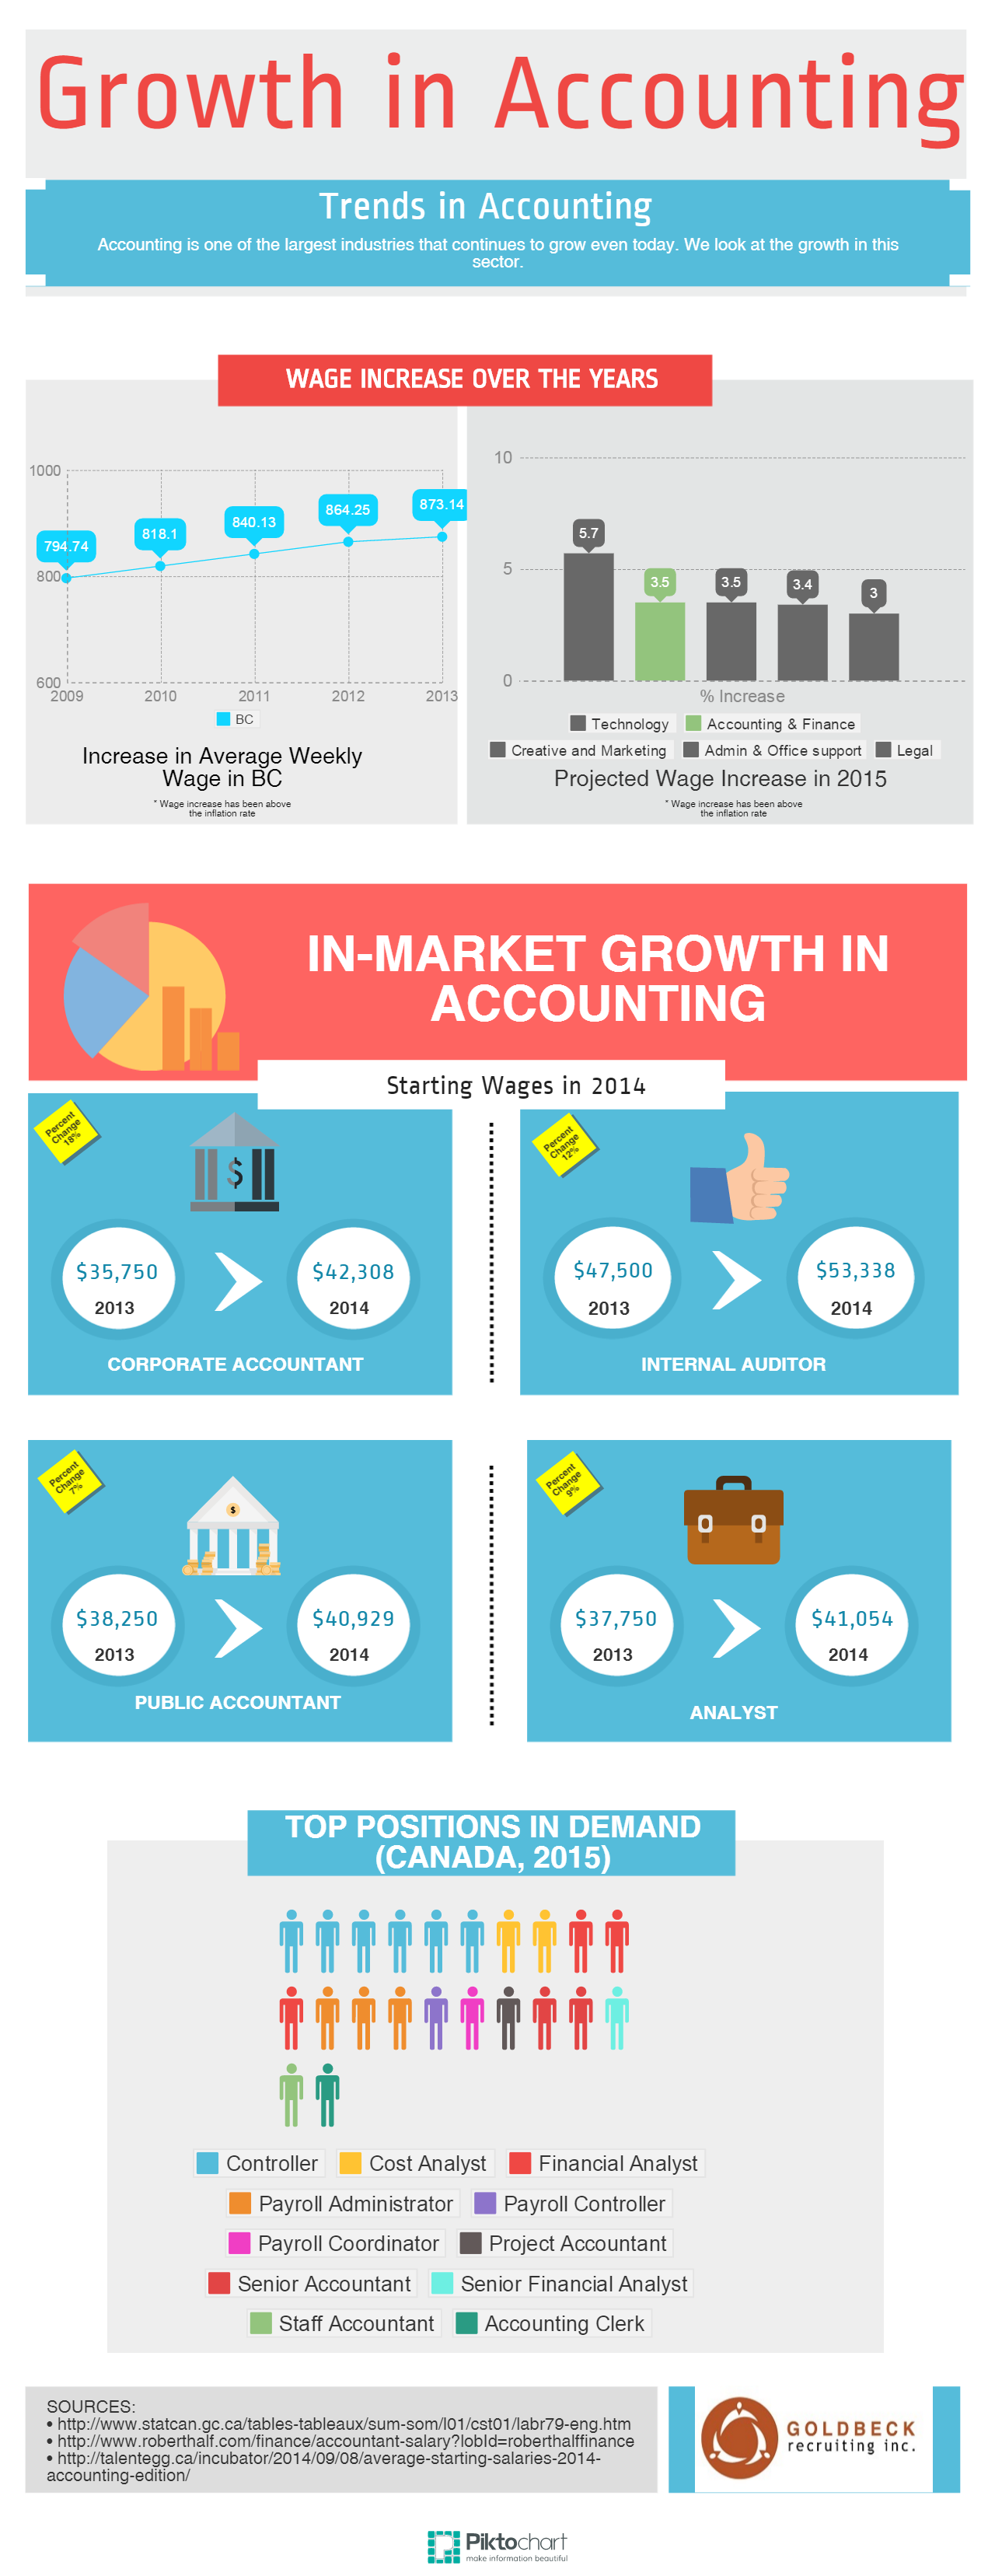 Growth in Accounting